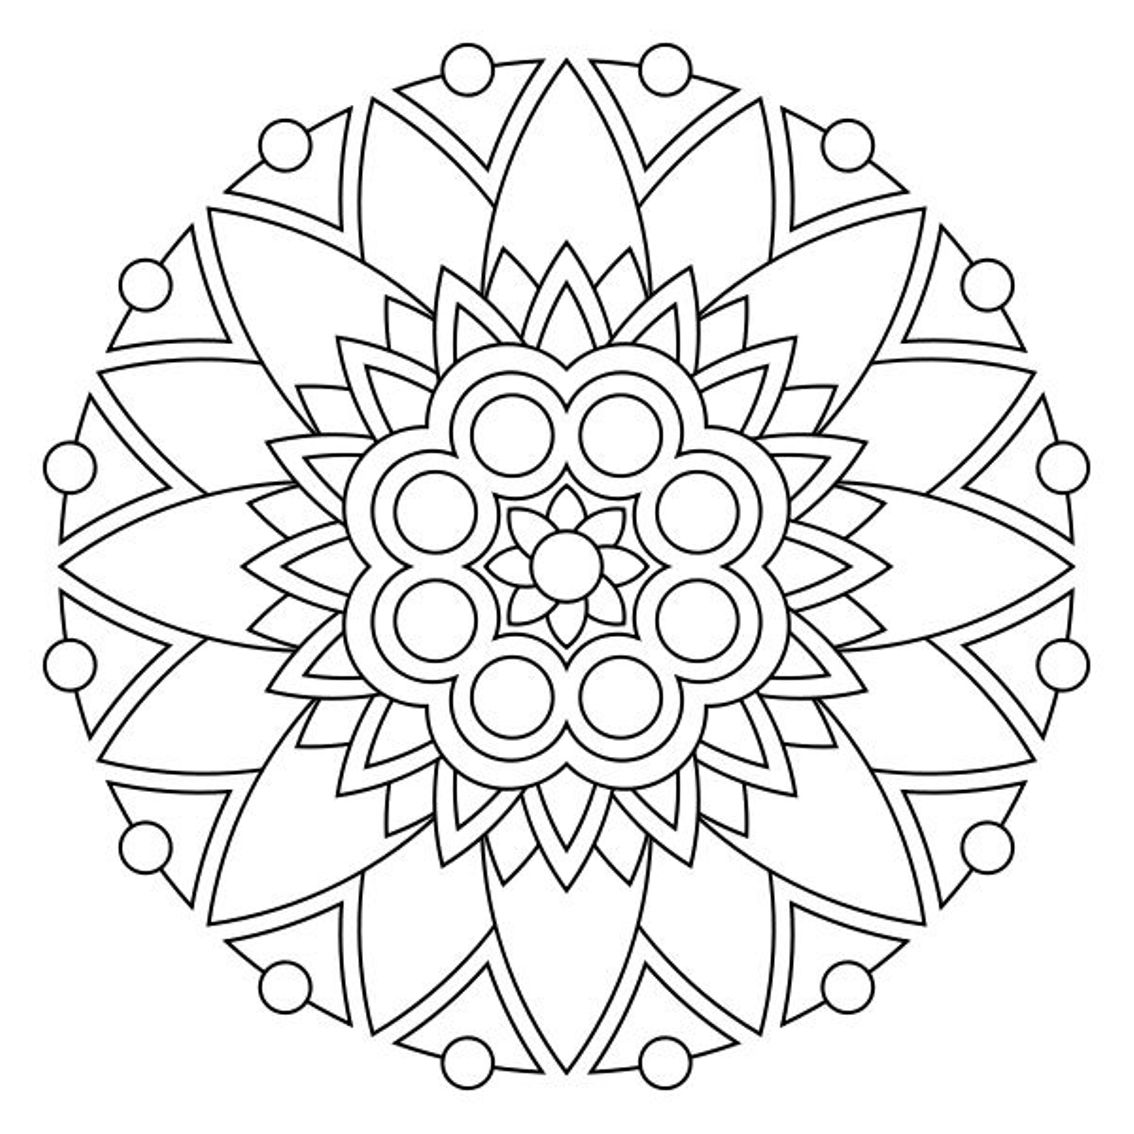 1134x1134 Flowers Mandalas 1000x900 Free Coloring Pages Printable Pictures To Color Kids